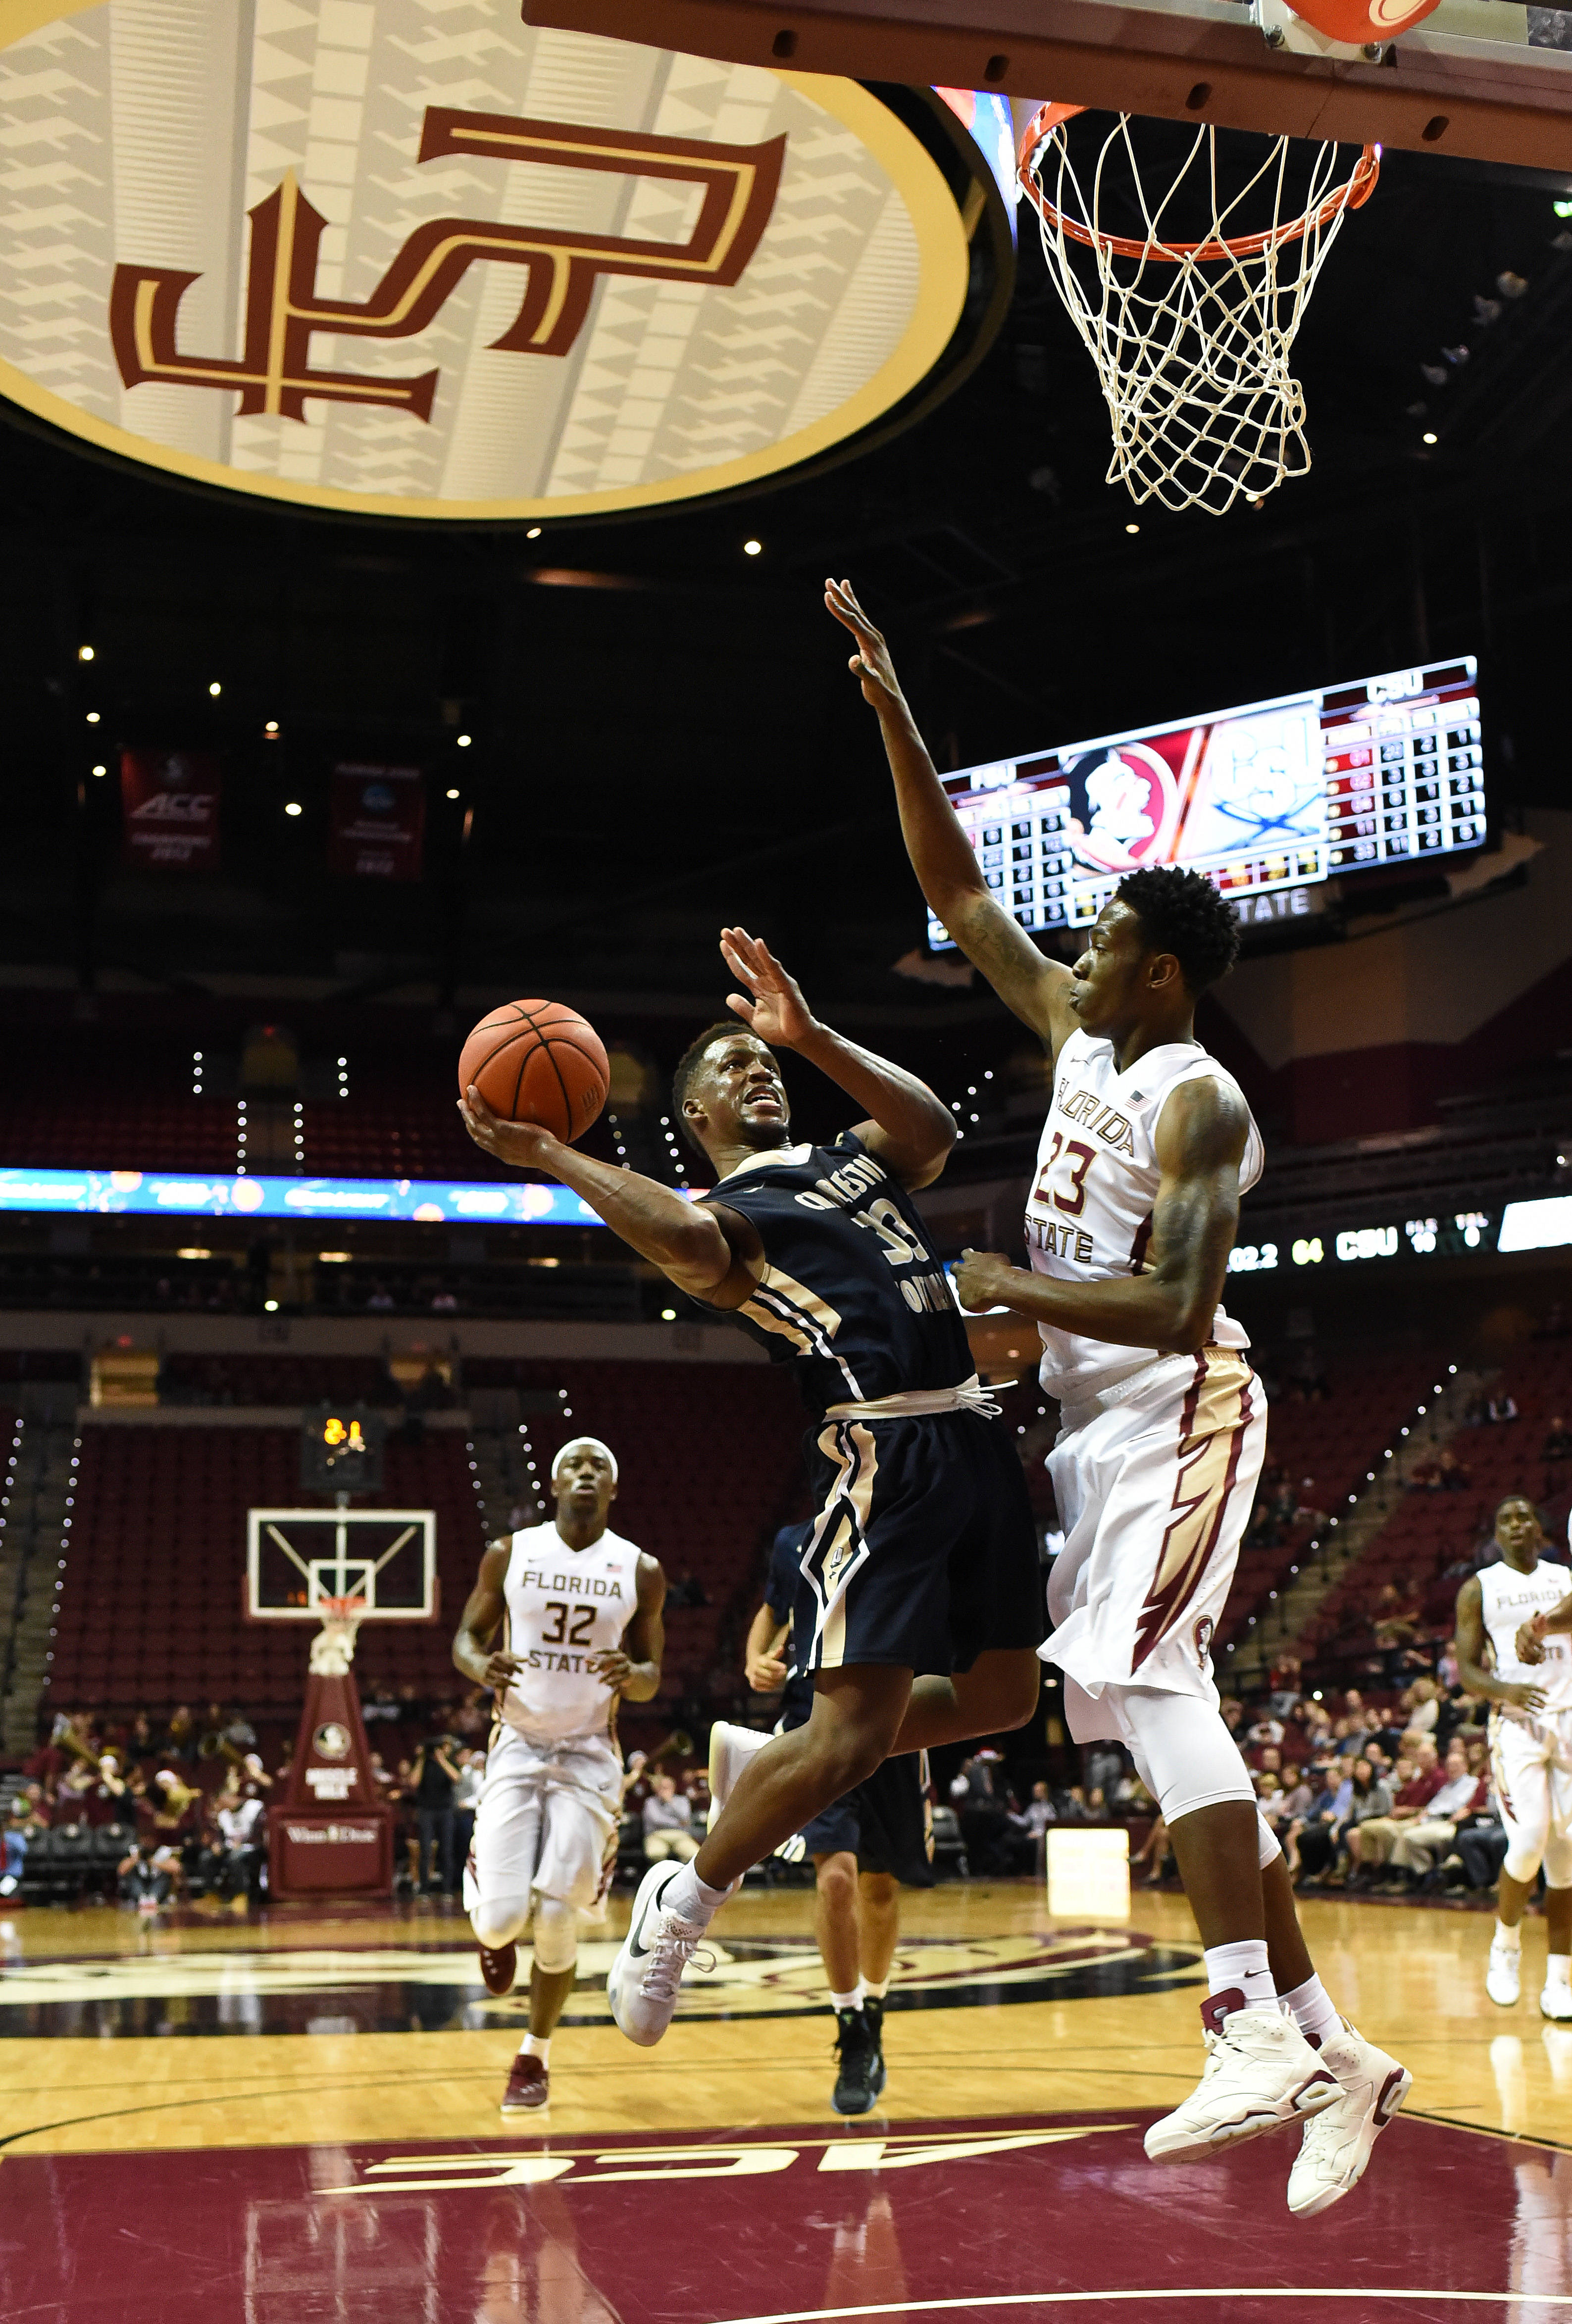 FSU vs. Charleston Southern